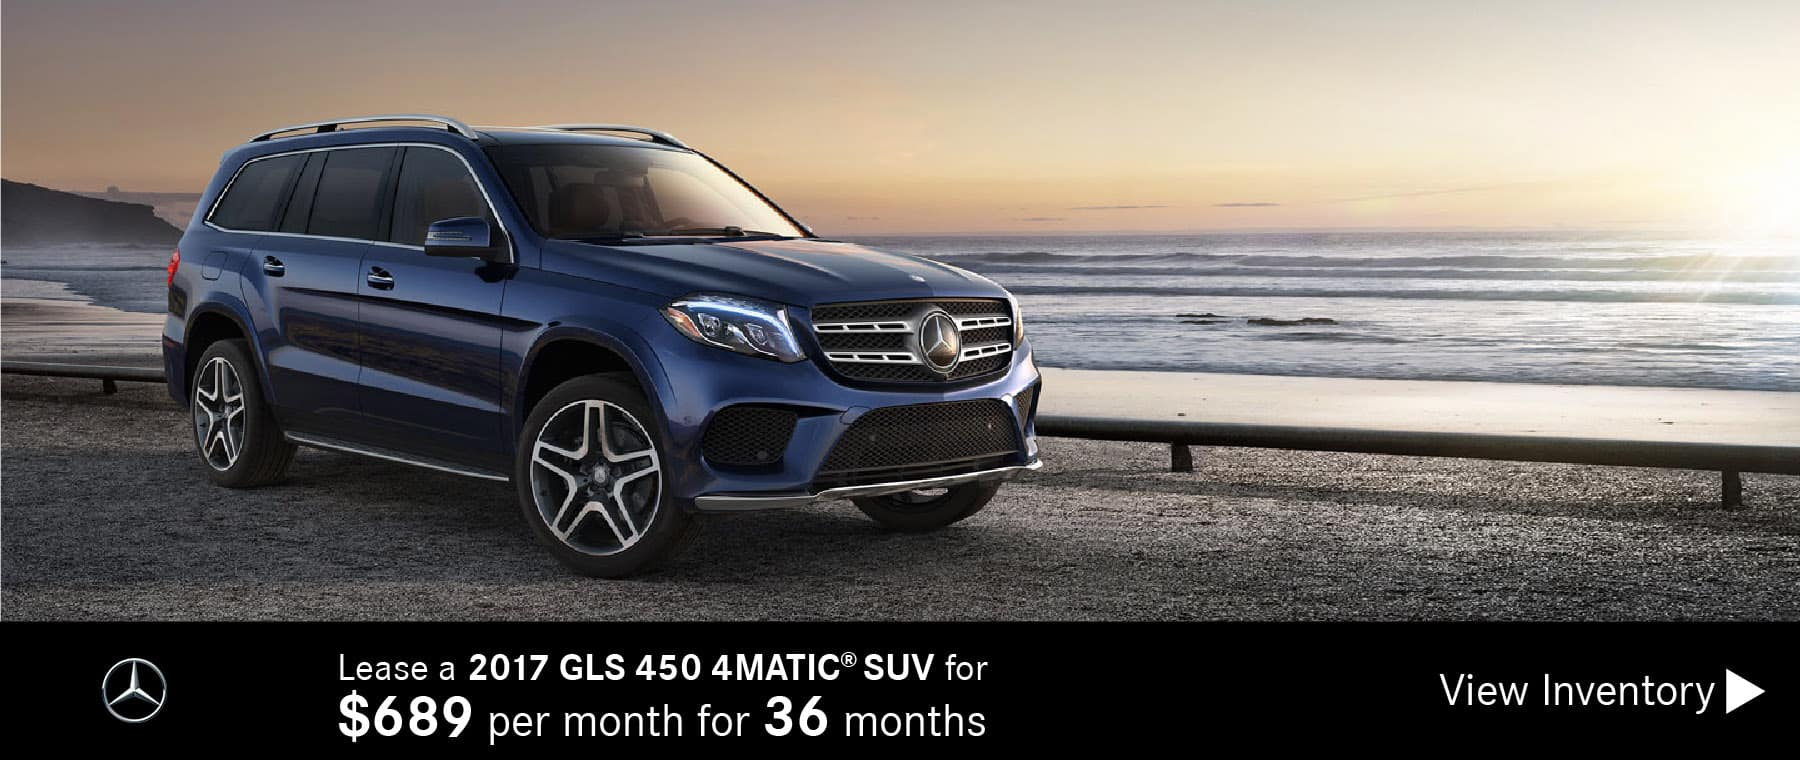 Mercedes-Benz of Wappingers Falls | Serving Wappingers ...